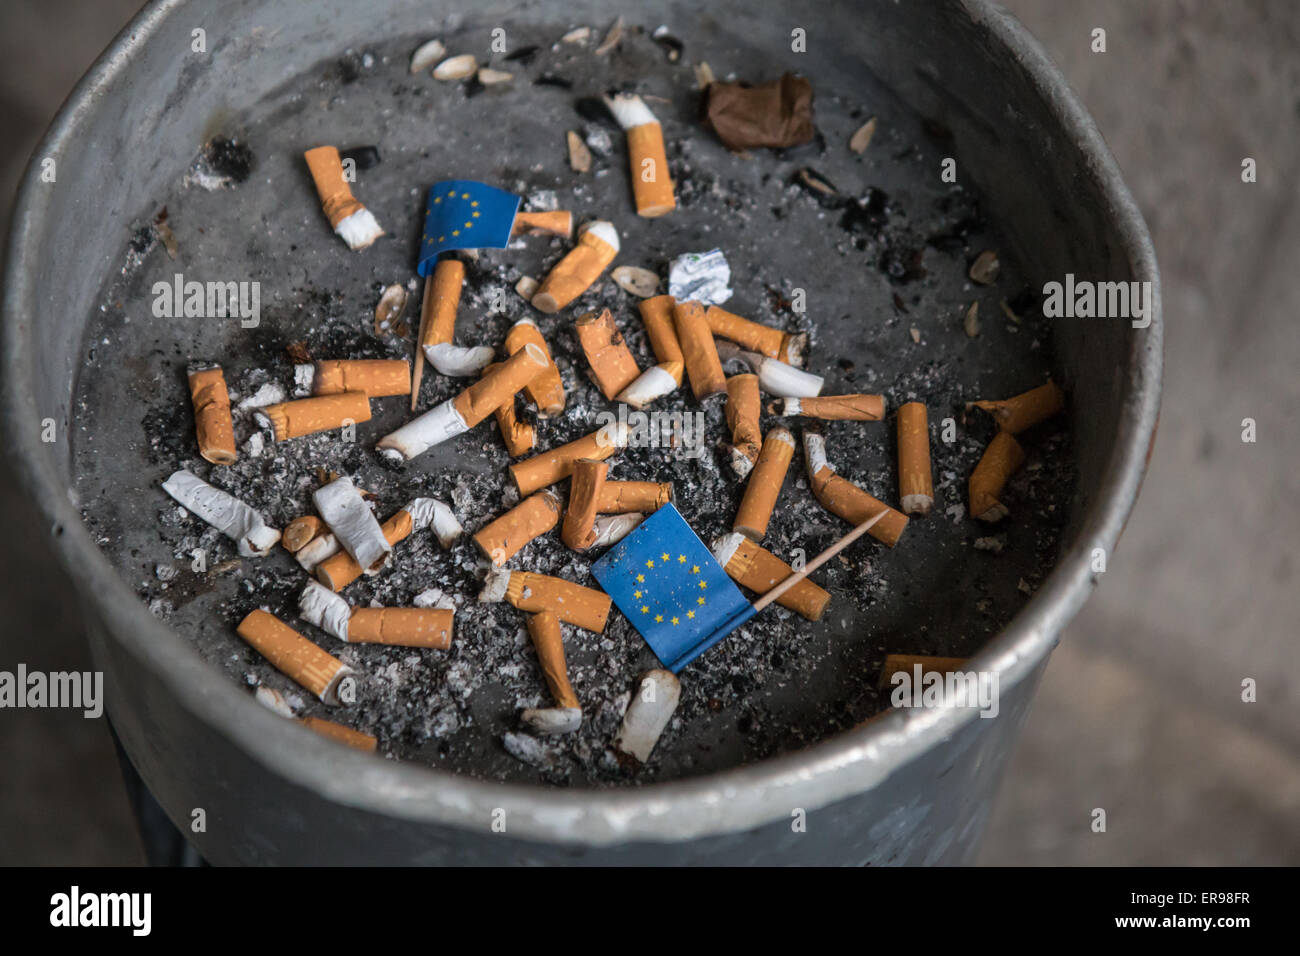 Ashtray with European flags - Stock Image